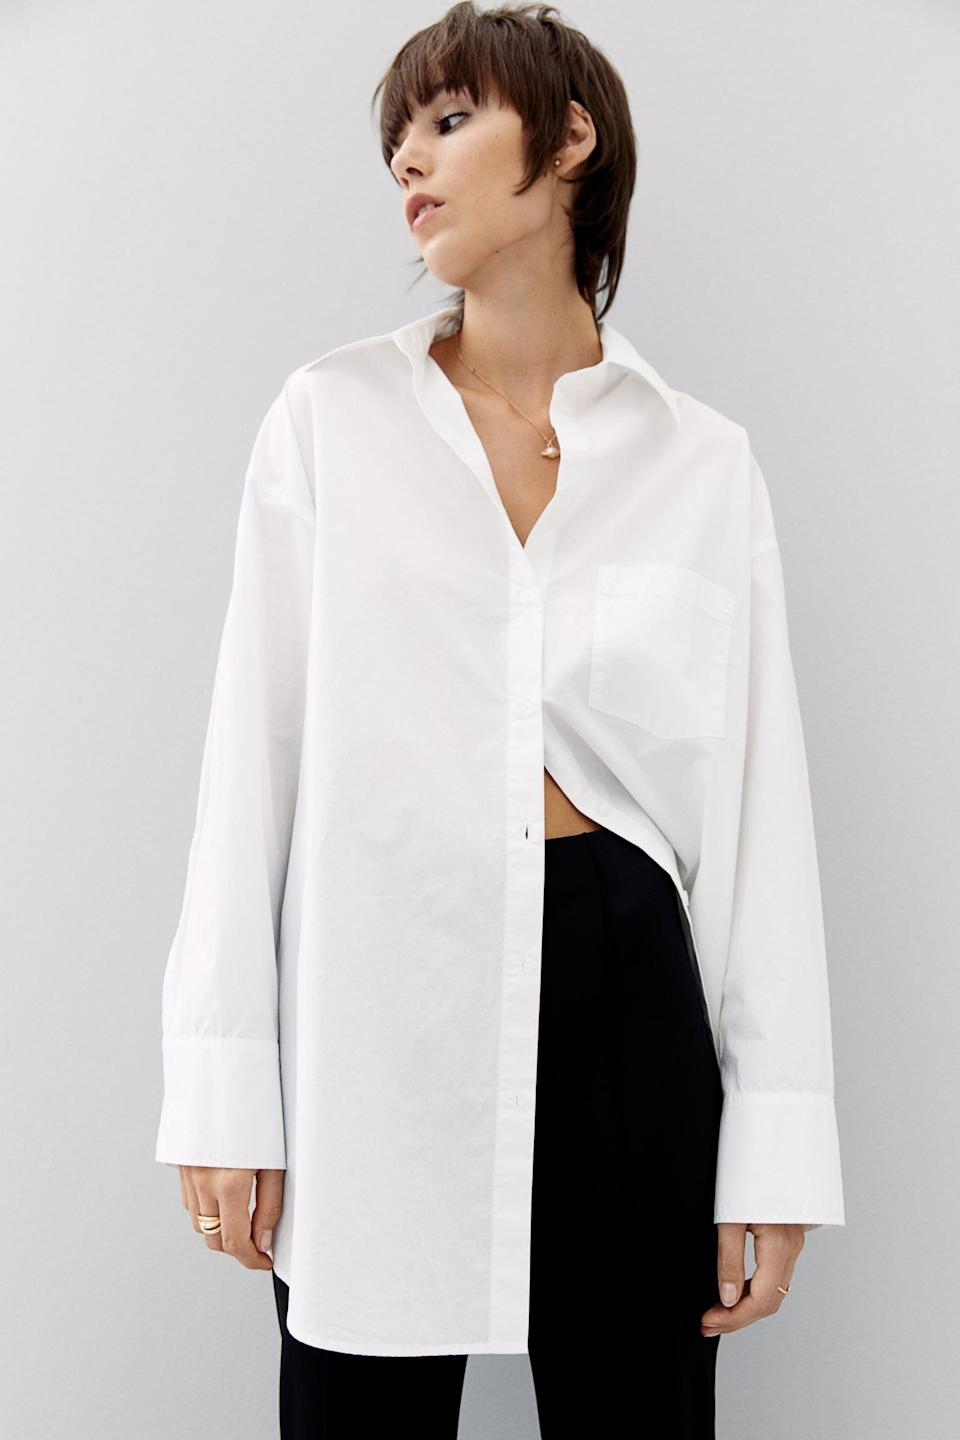 <p>For your first day back to the office or an interview, this <span>Oversized Cotton Shirt</span> ($25) will look polished and easygoing. It will earn a permanent spot in your closet.</p>